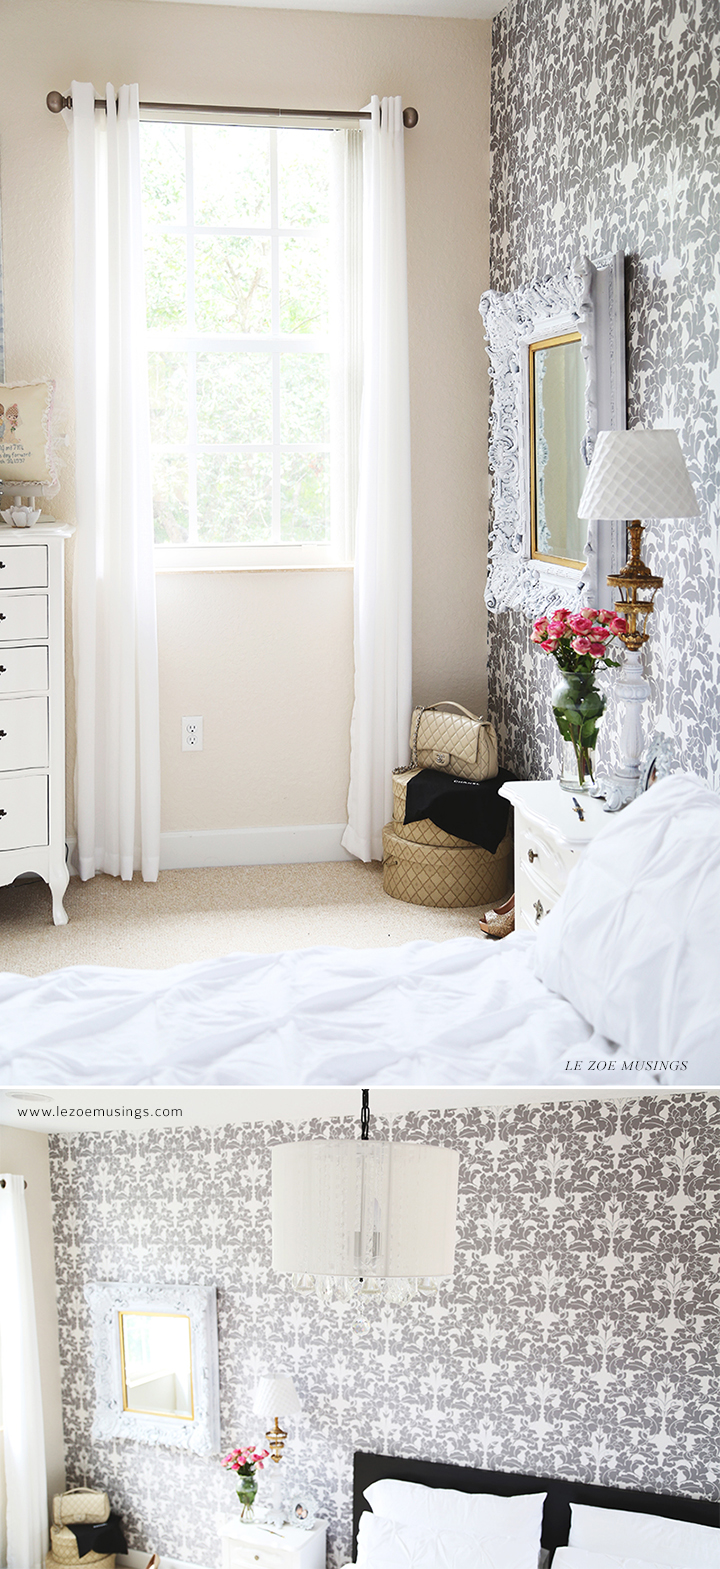 Bedroom Makeover with Wallpaper by Le Zoe Musings7